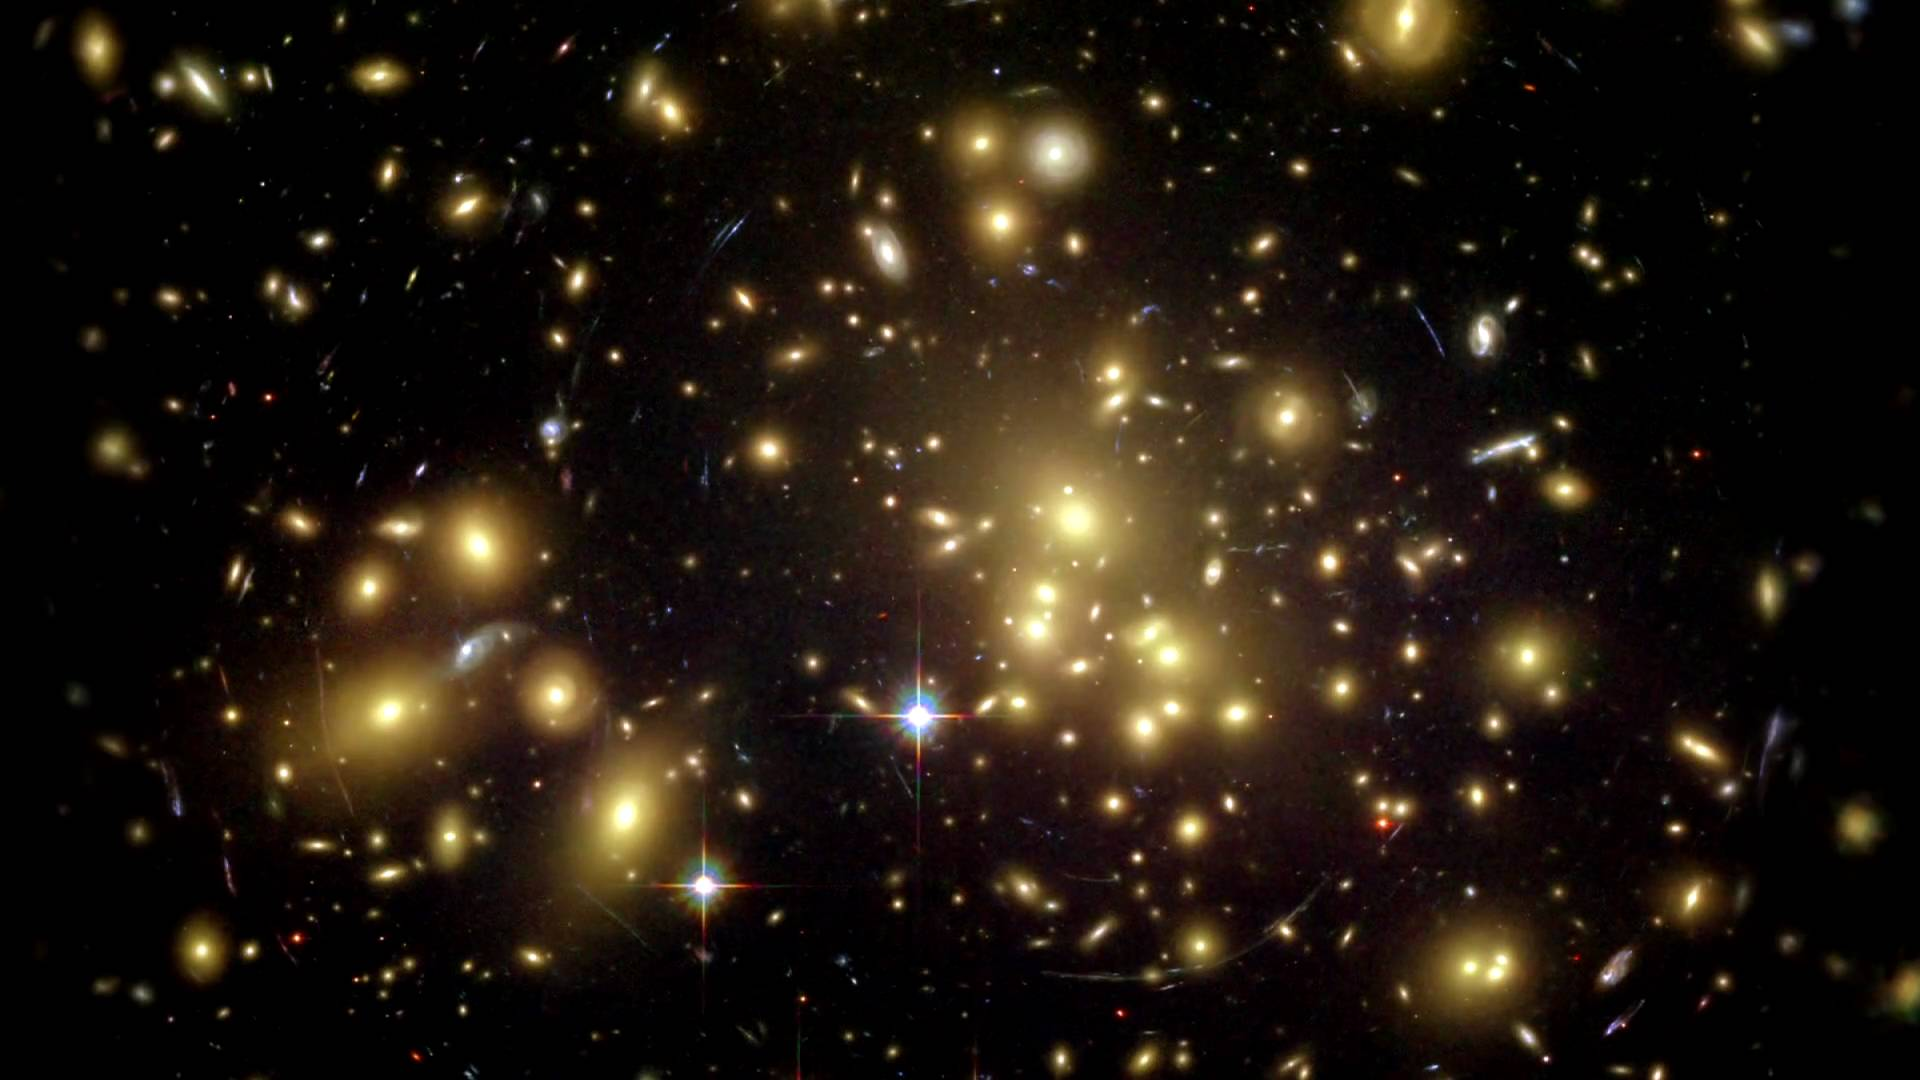 GRAVITY LENS - Galaxy Cluster Abell 1689 Hubble Space Telescope NASA, N. Benitez (JHU), T. Broadhurst (The Hebrew University), H. Ford (JHU), M. Clampin (STcl), G Hartig (STScl), GIllingworth (UCO/Lick Observatory), the ACS Science Team and ESA STSck-PRC03-01a